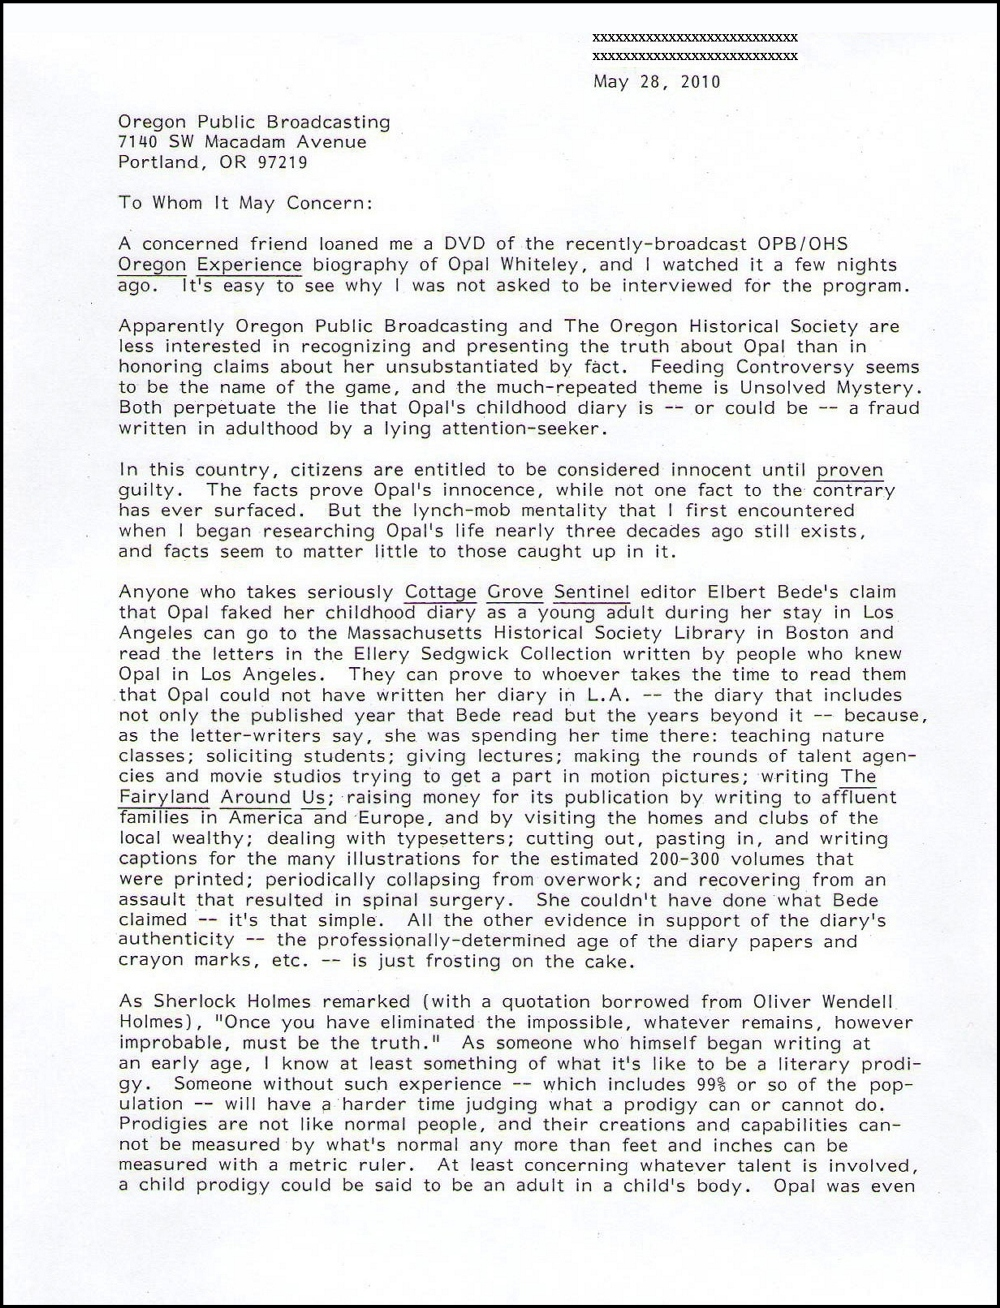 Letter from Benjamin Hoff to OPB May 2010